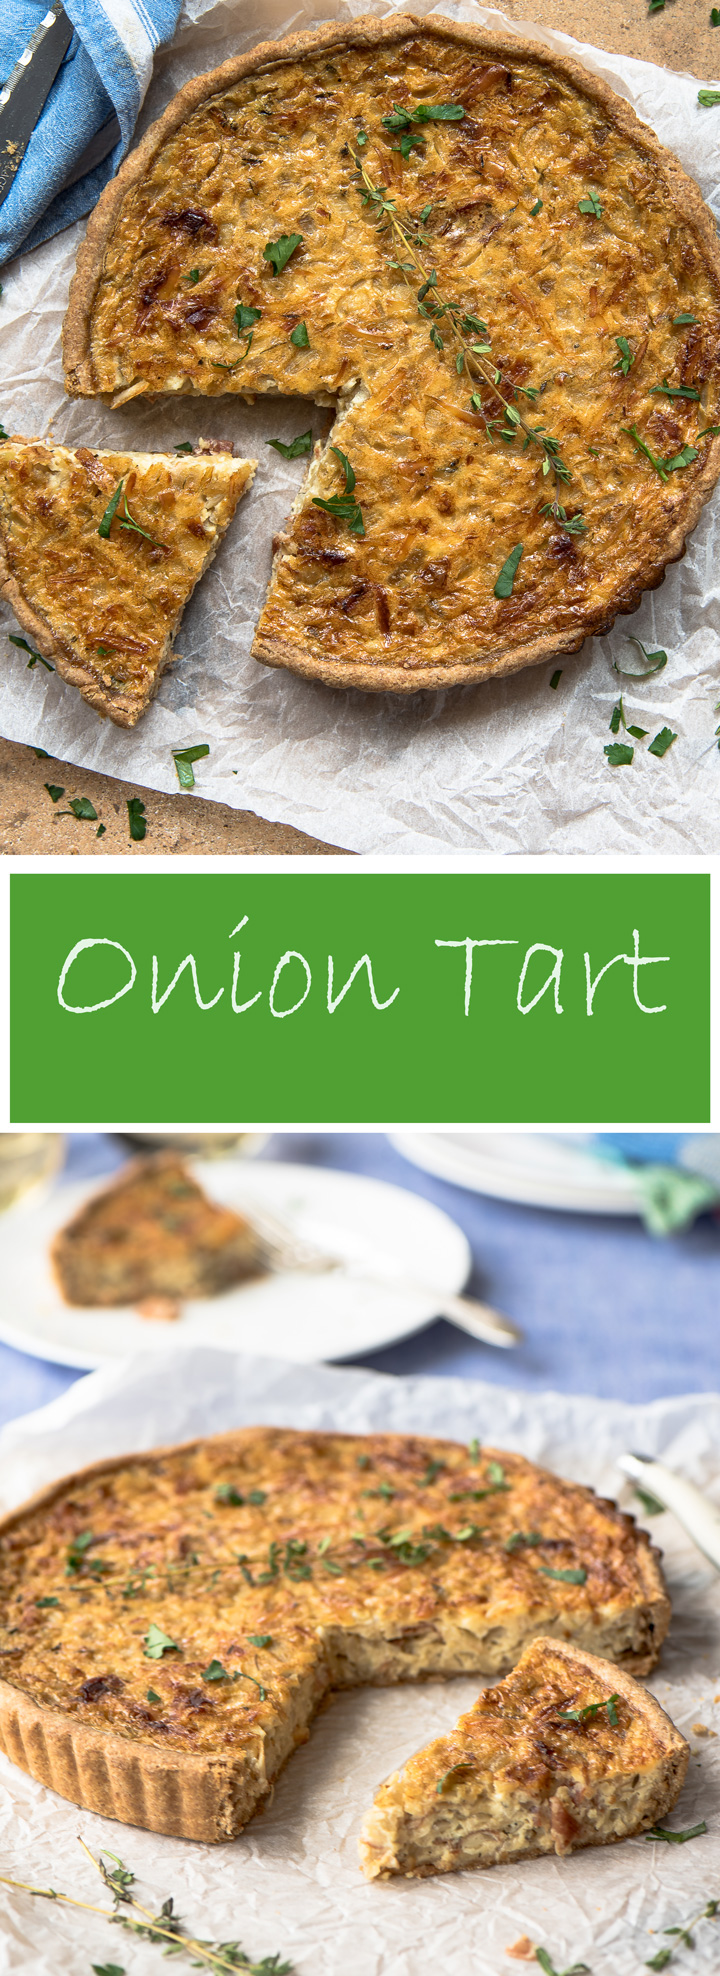 Irresistible Onion Tart, a recipe.